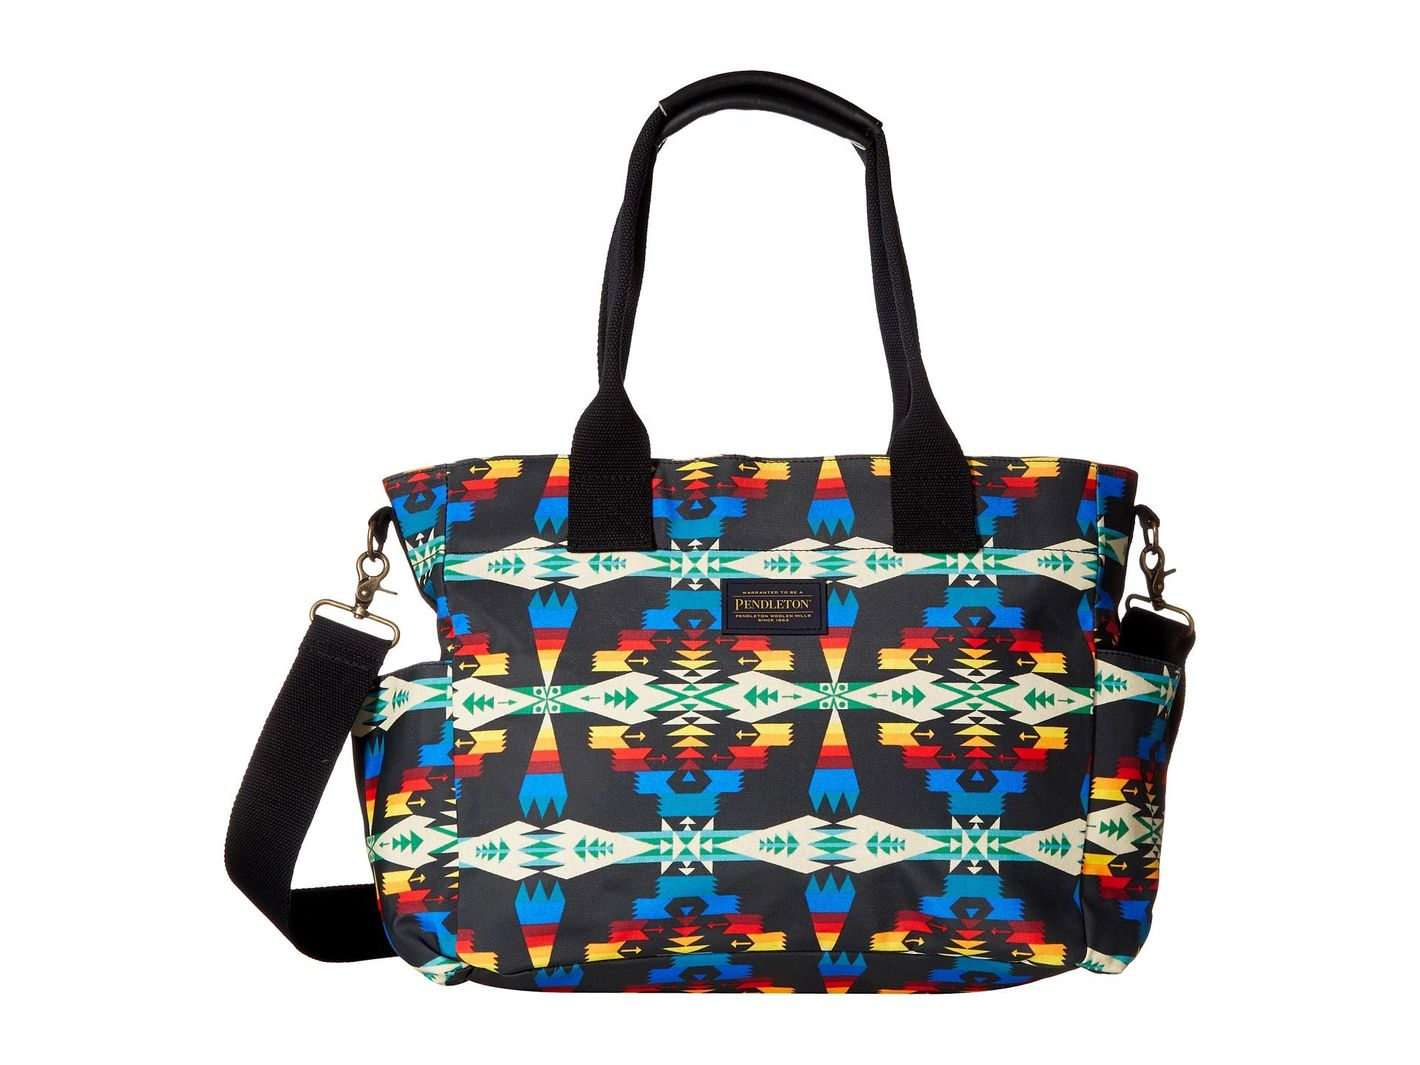 Pendleton Canopy Canvas Super Tote